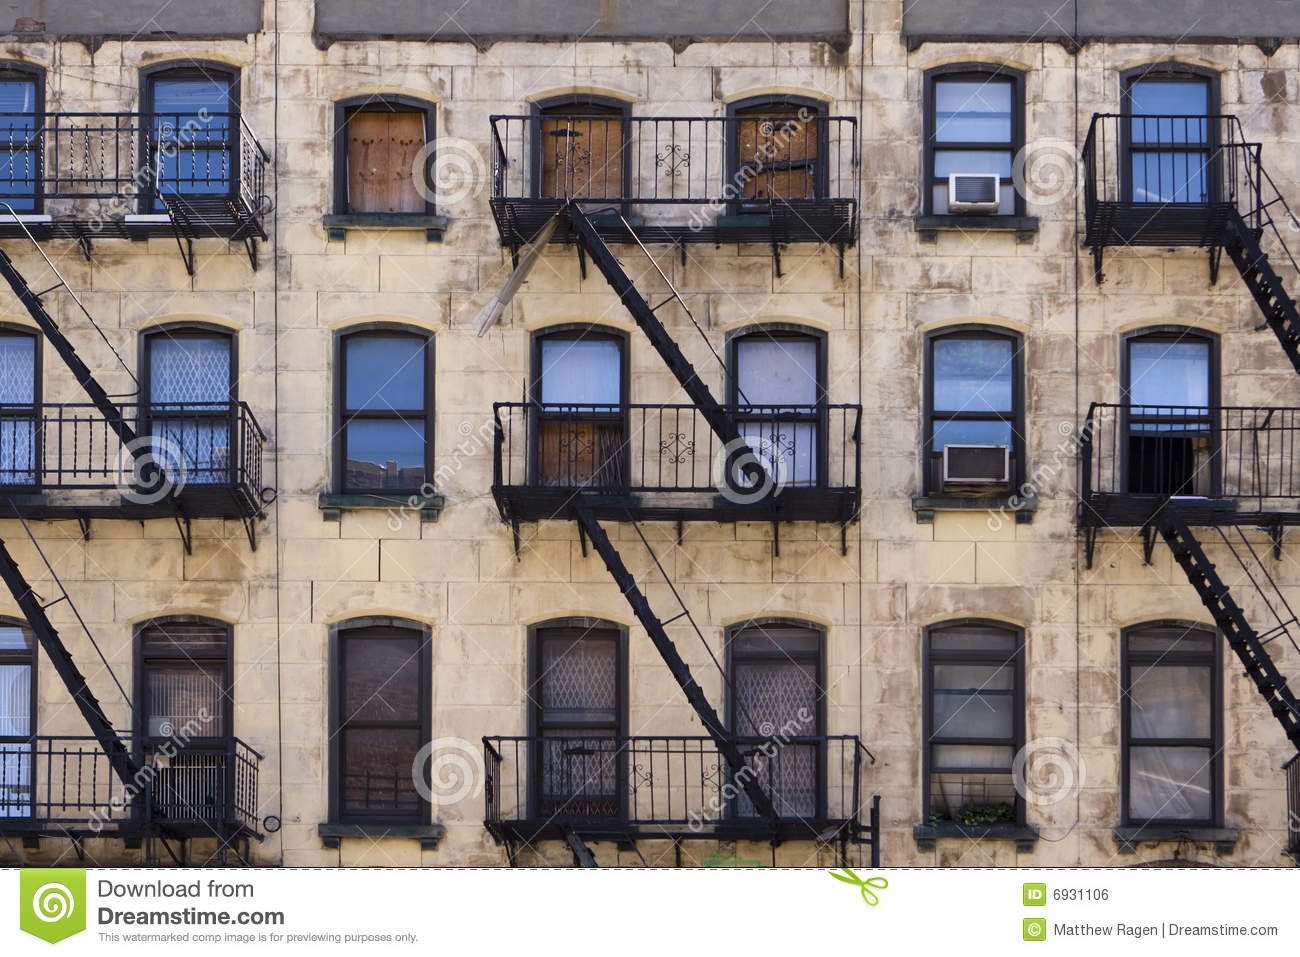 New York Tenement Building Royalty Free Stock Image